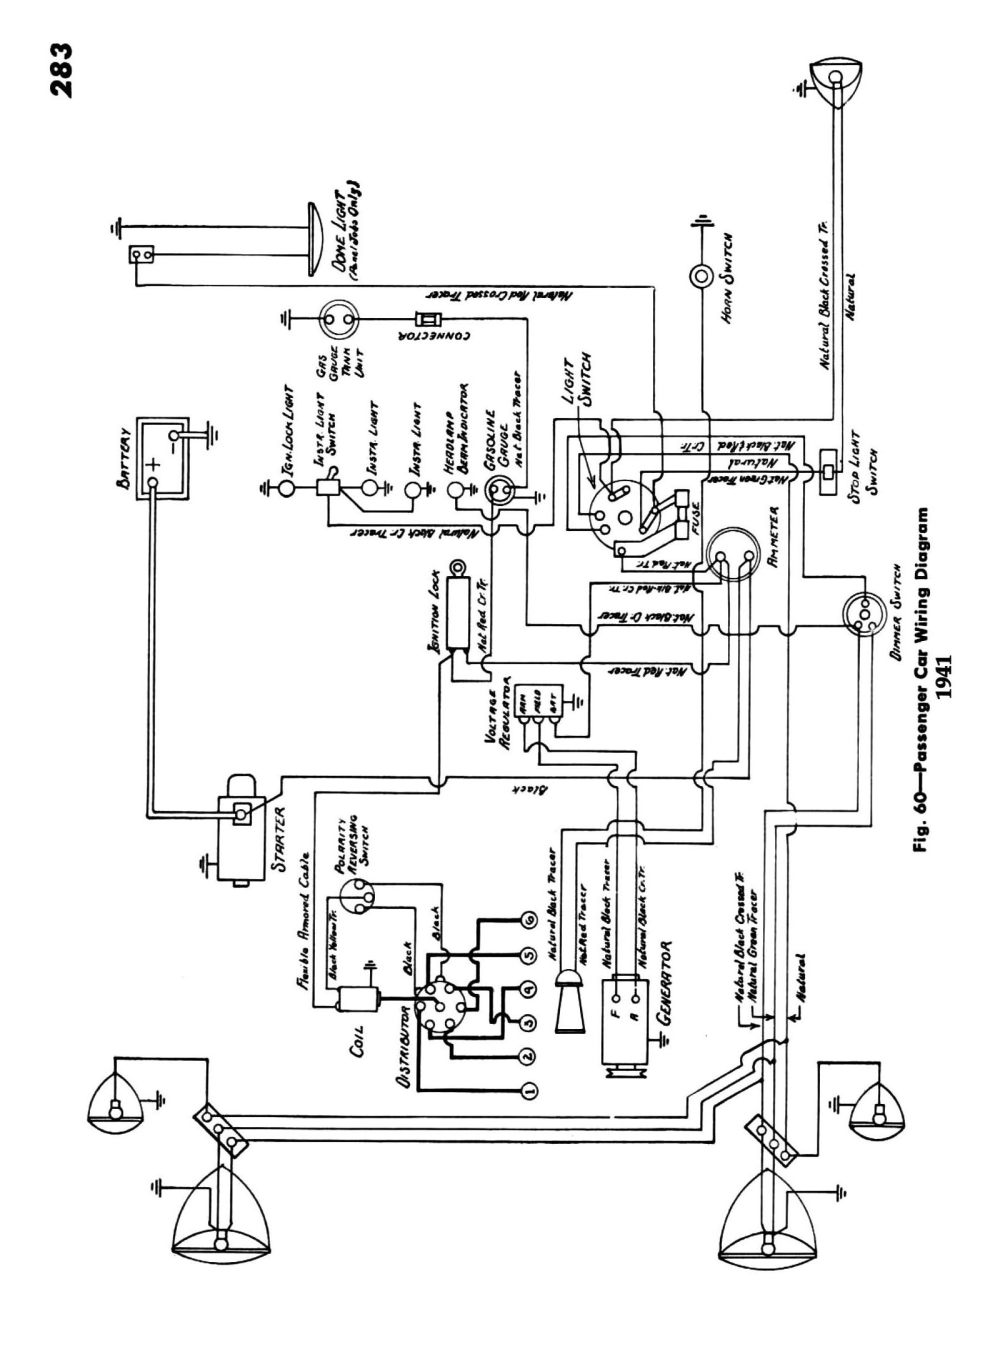 medium resolution of wiring diagram 1947 1953 also 1941 chevy special deluxe moreover 1941 chevy wiring harness